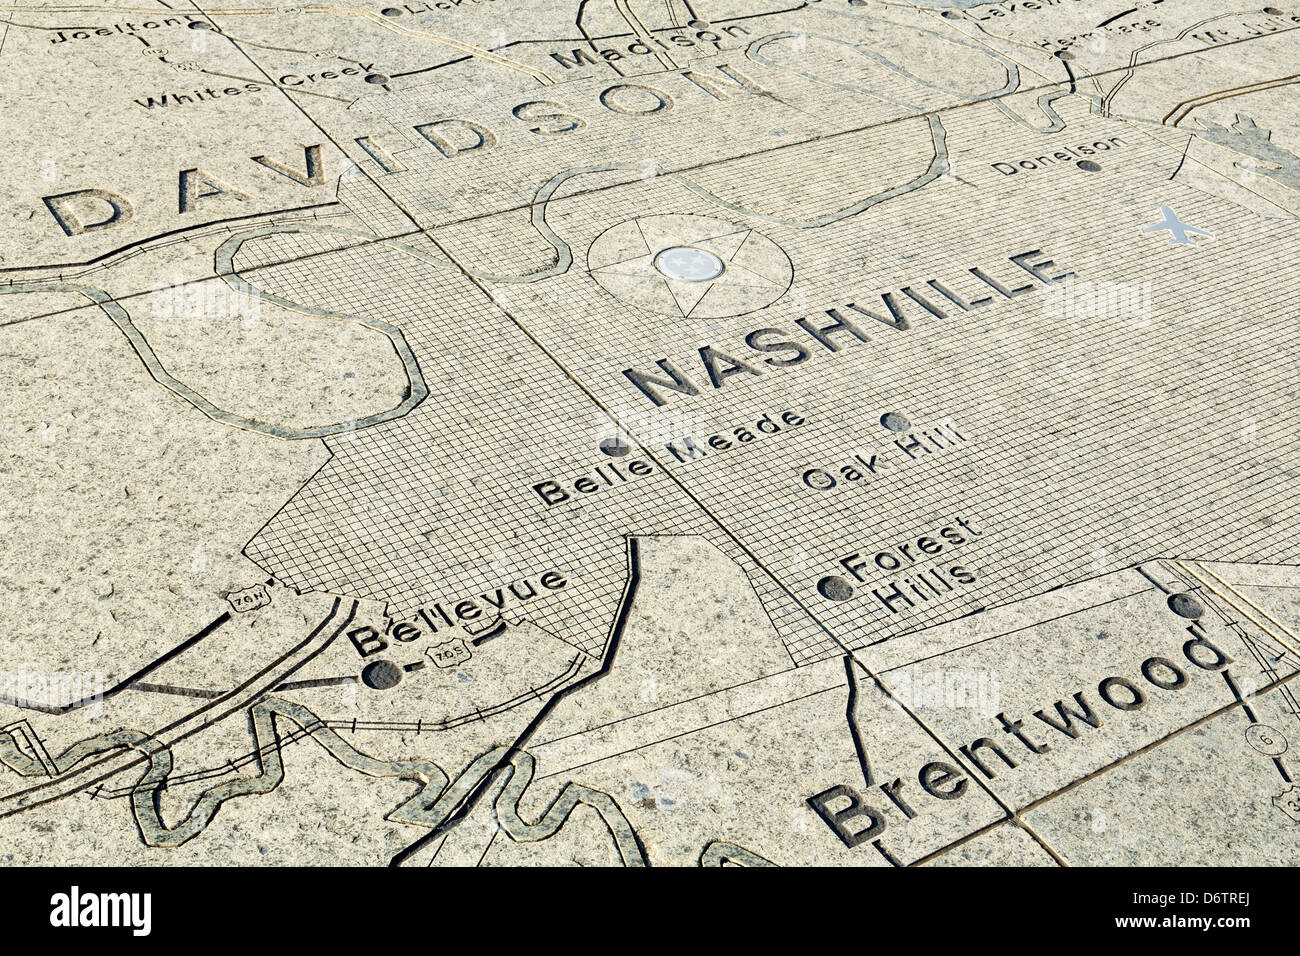 State Parks Tennessee Map.Map In Bicentennial Capitol Mall State Park Nashville Tennessee Usa